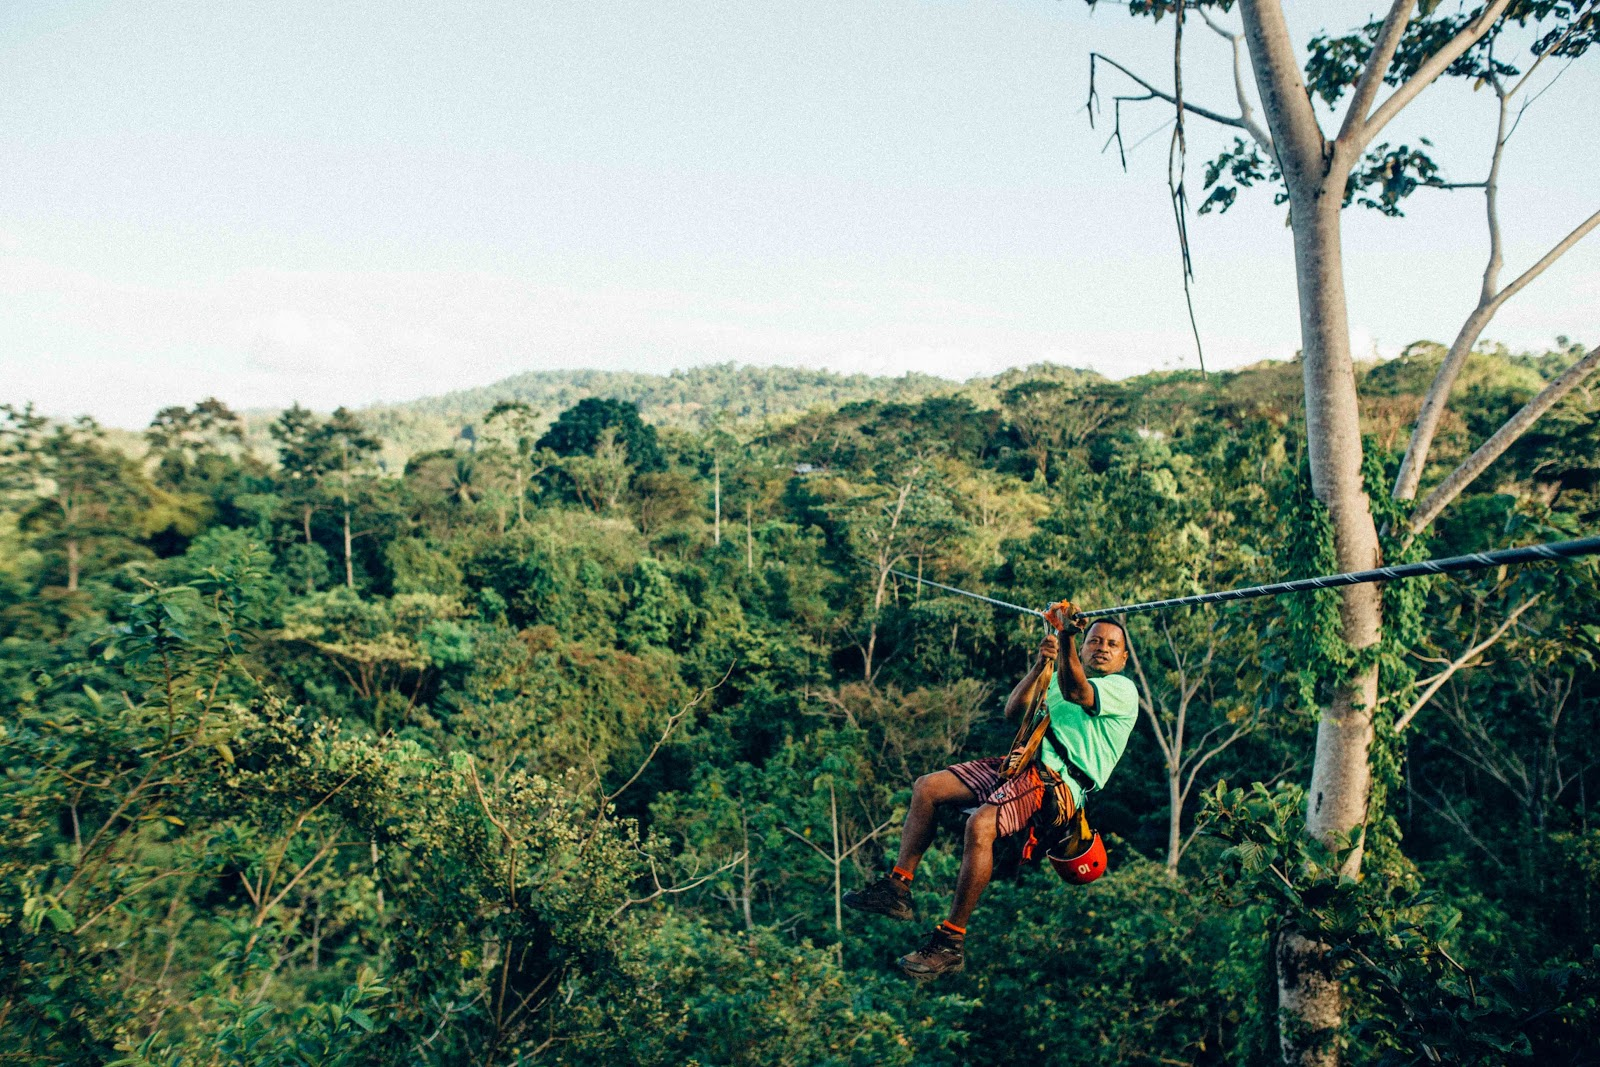 Cruising the second longest and tallest zipline is one of the fun things to do in Puerto Rico